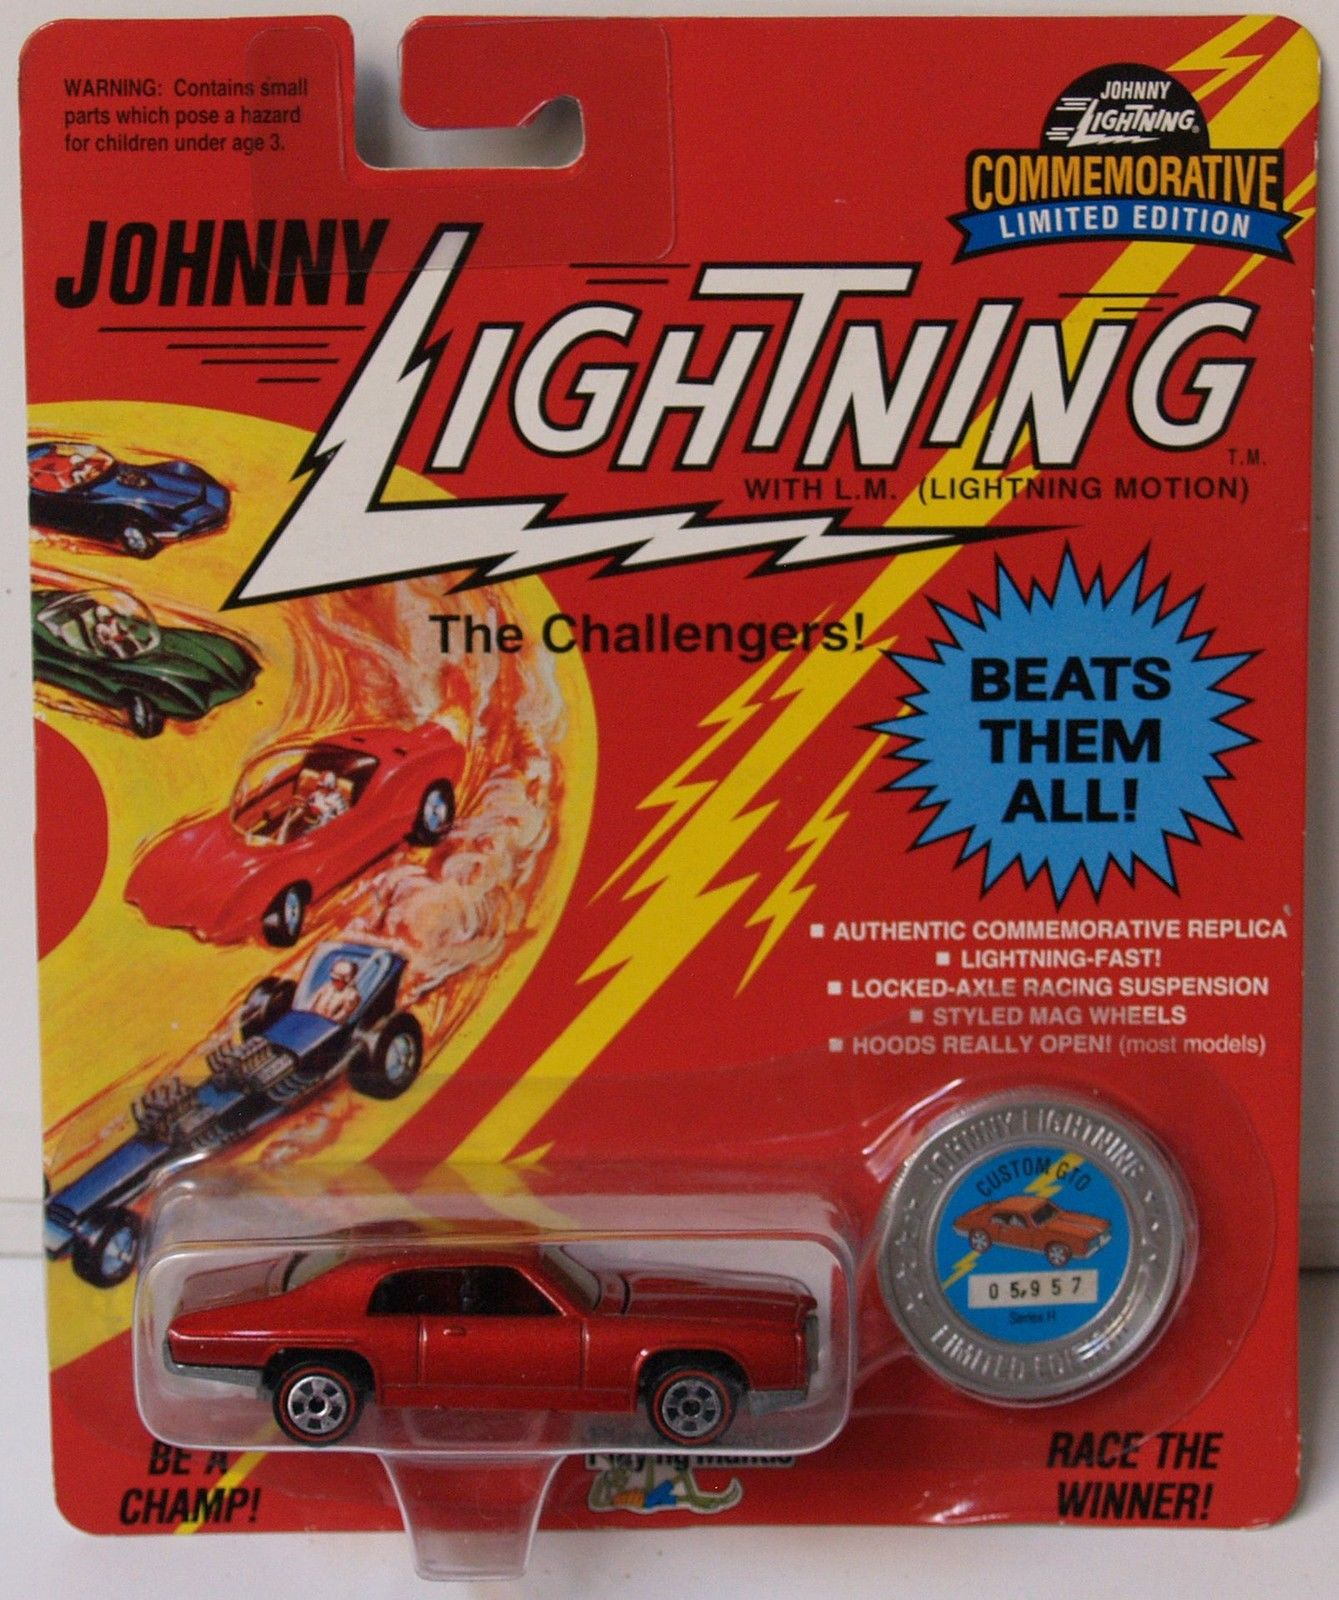 JOHNNY LIGHTNING COMMEMORATIVE - RED CUSTOM GTO - SERIES H